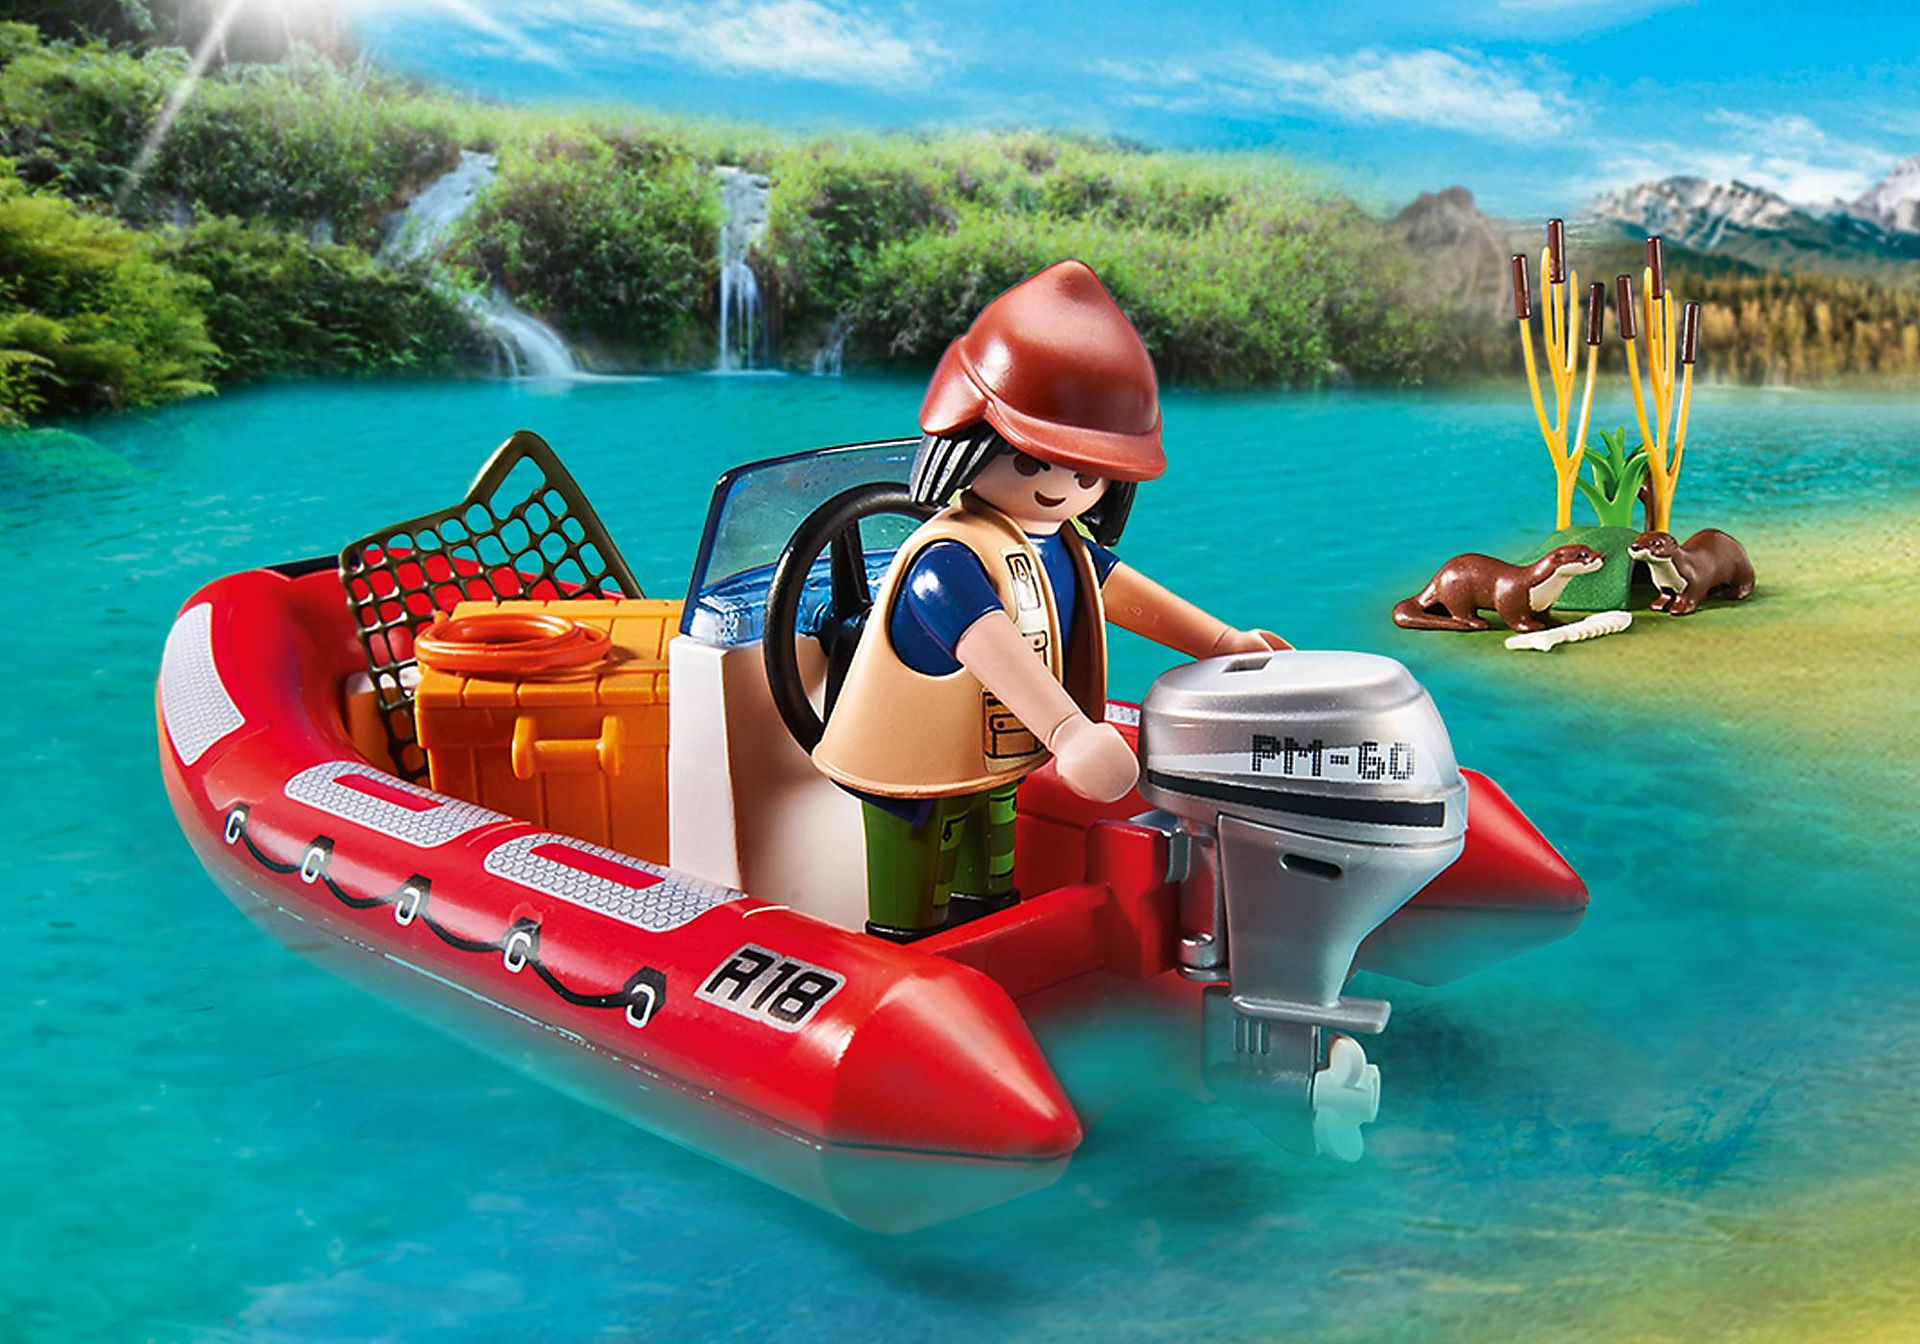 http://media.playmobil.com/i/playmobil/5559_product_extra2/Rubberboot met stropers